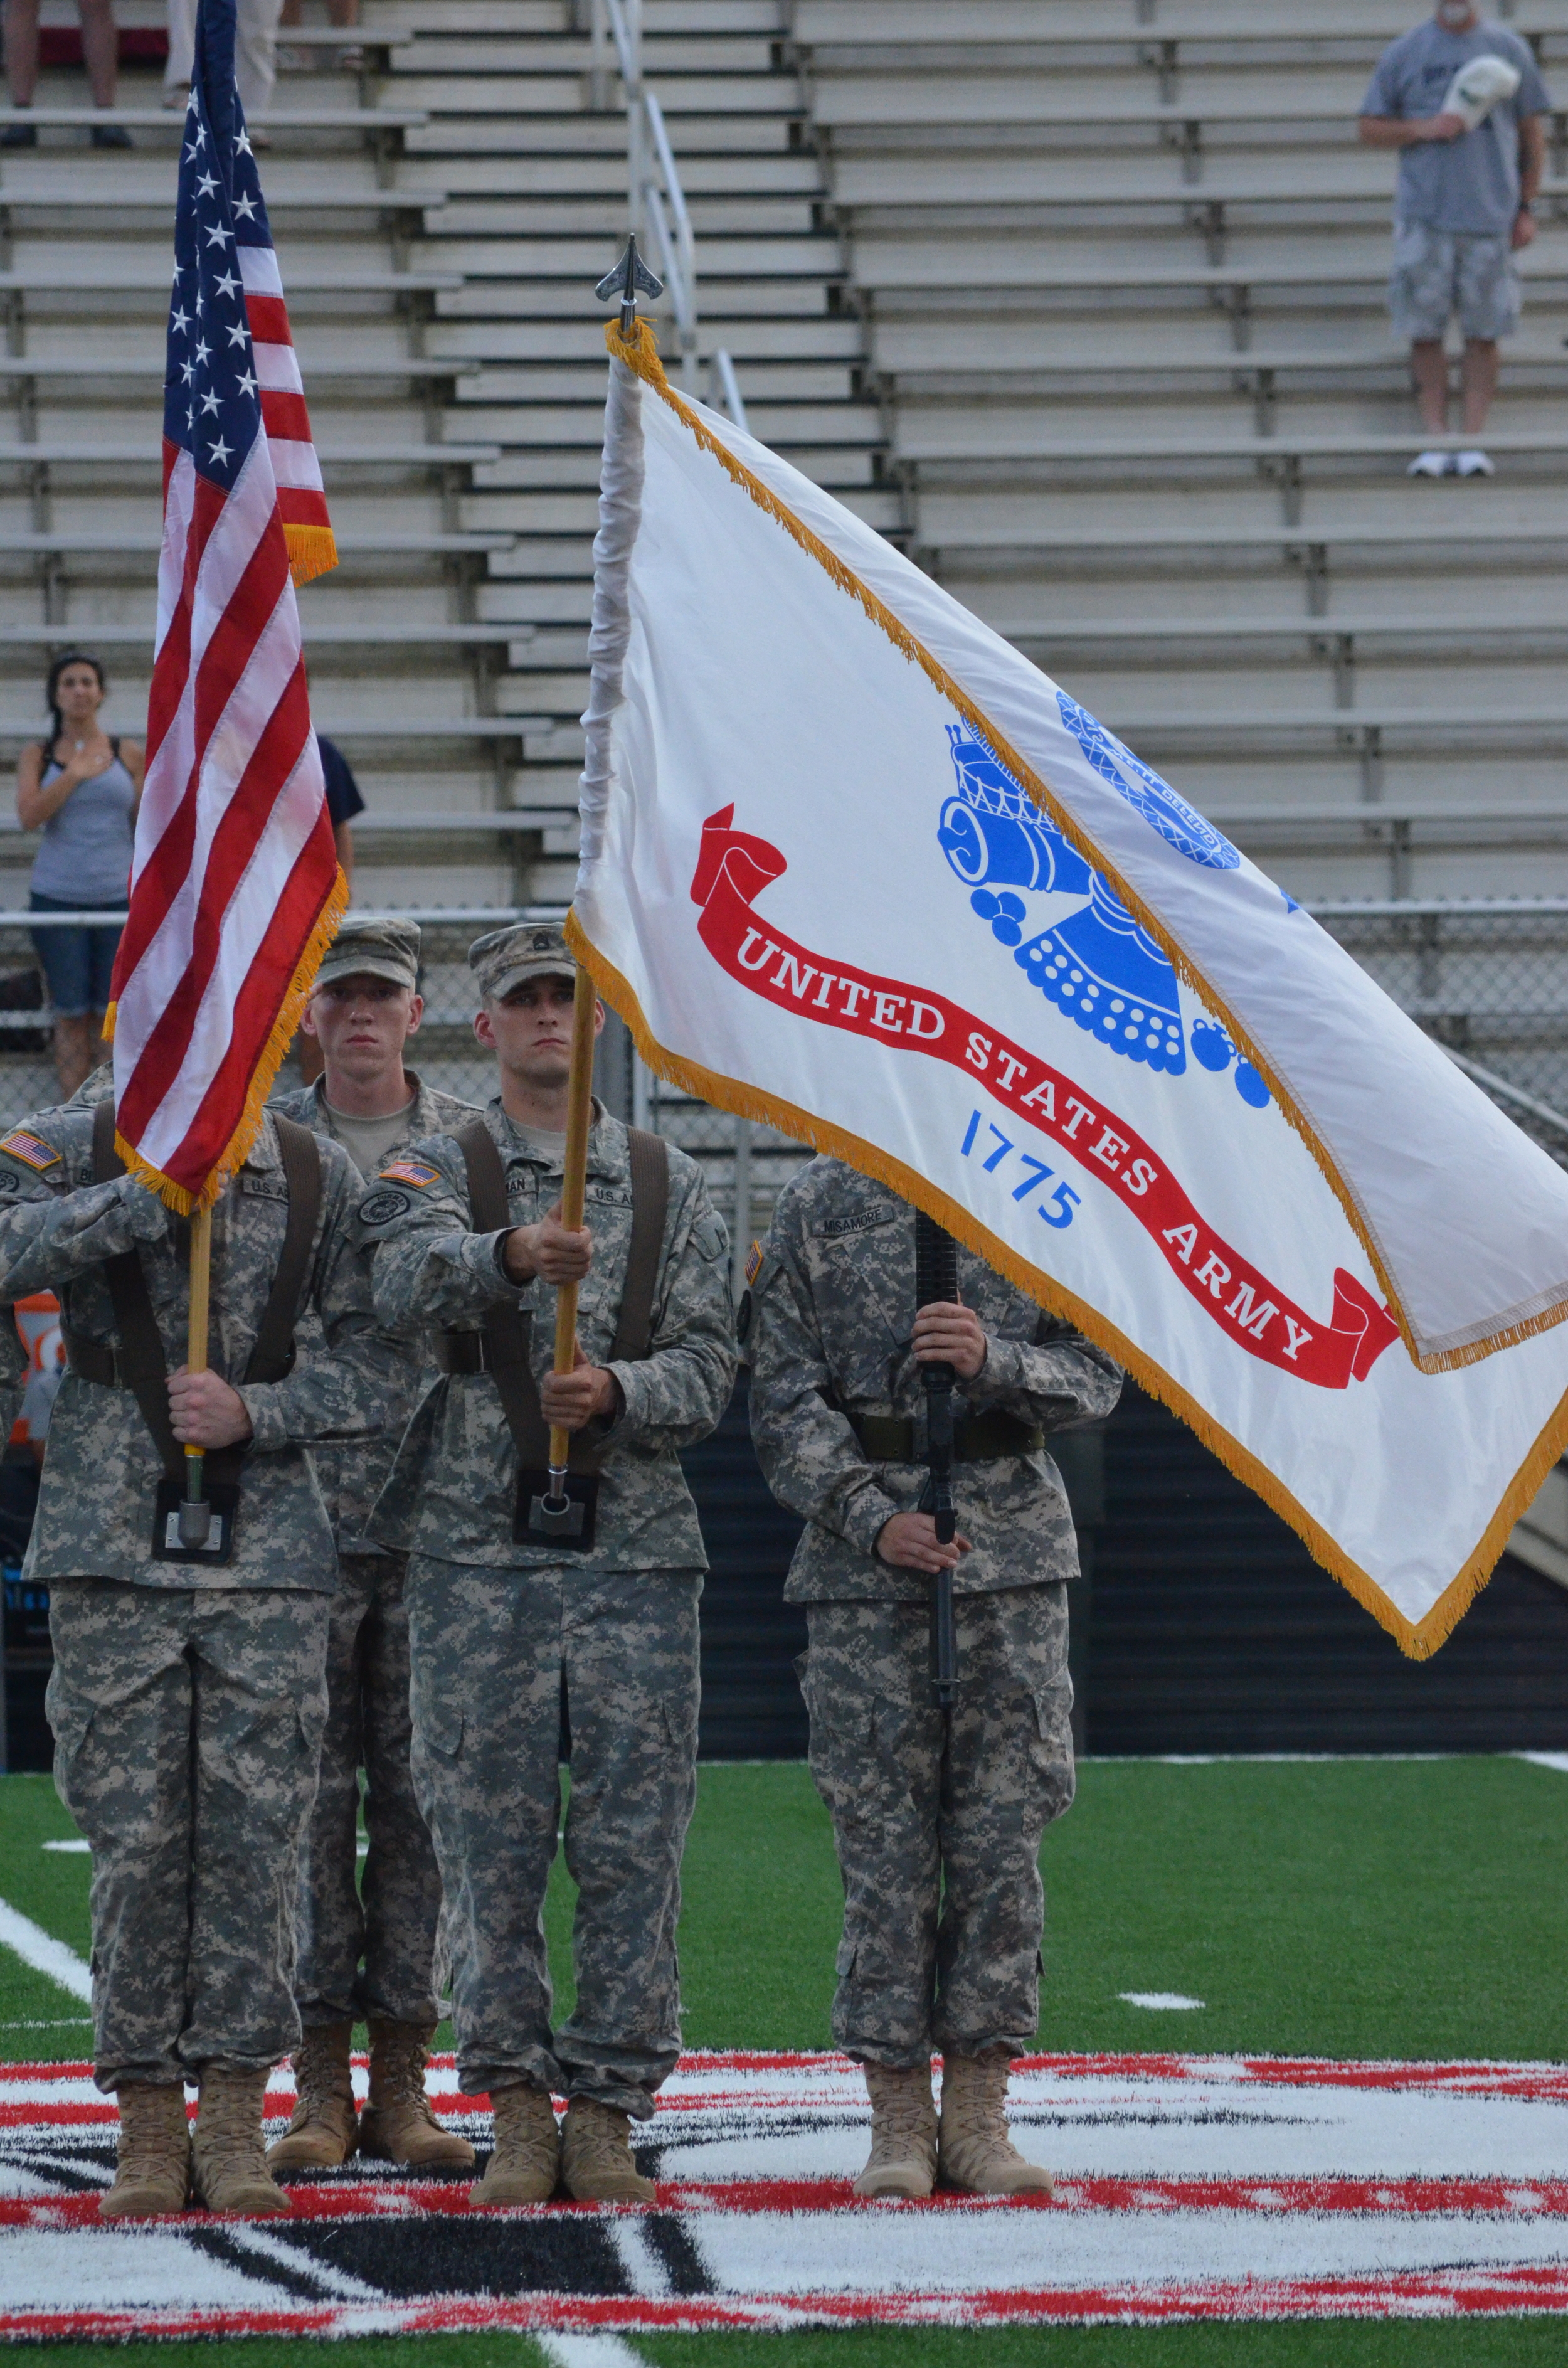 The Color Guard presents the American and US Army flags before the game starts.